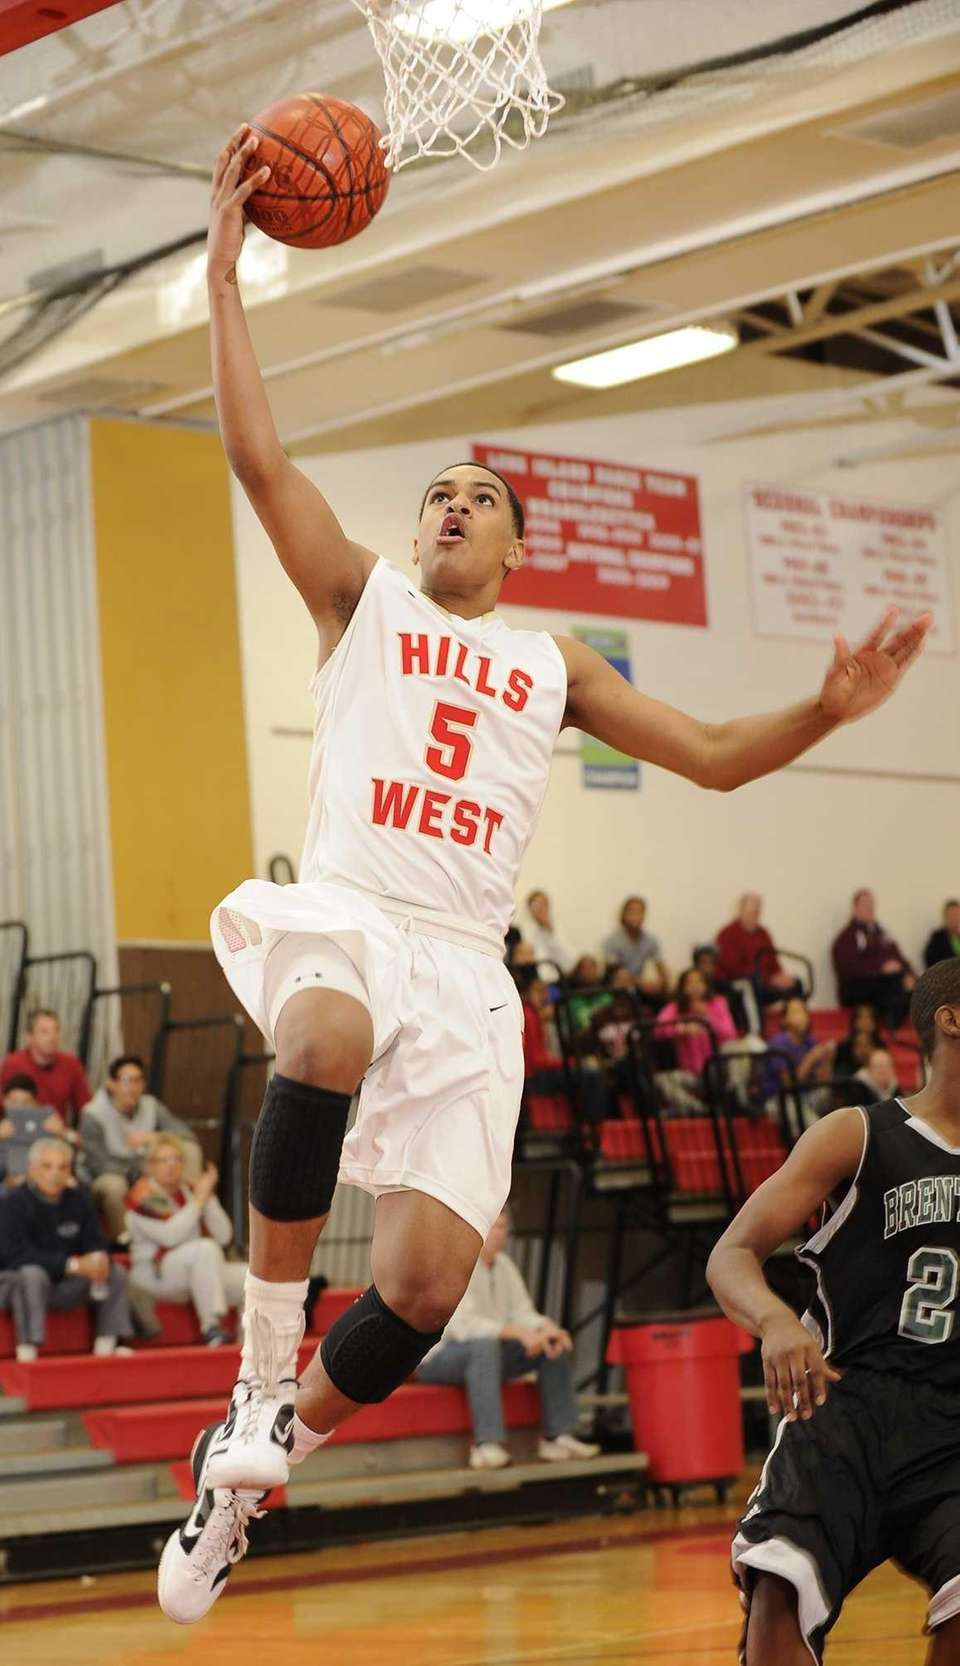 Half Hollow Hills West forward Terry Harris shoots